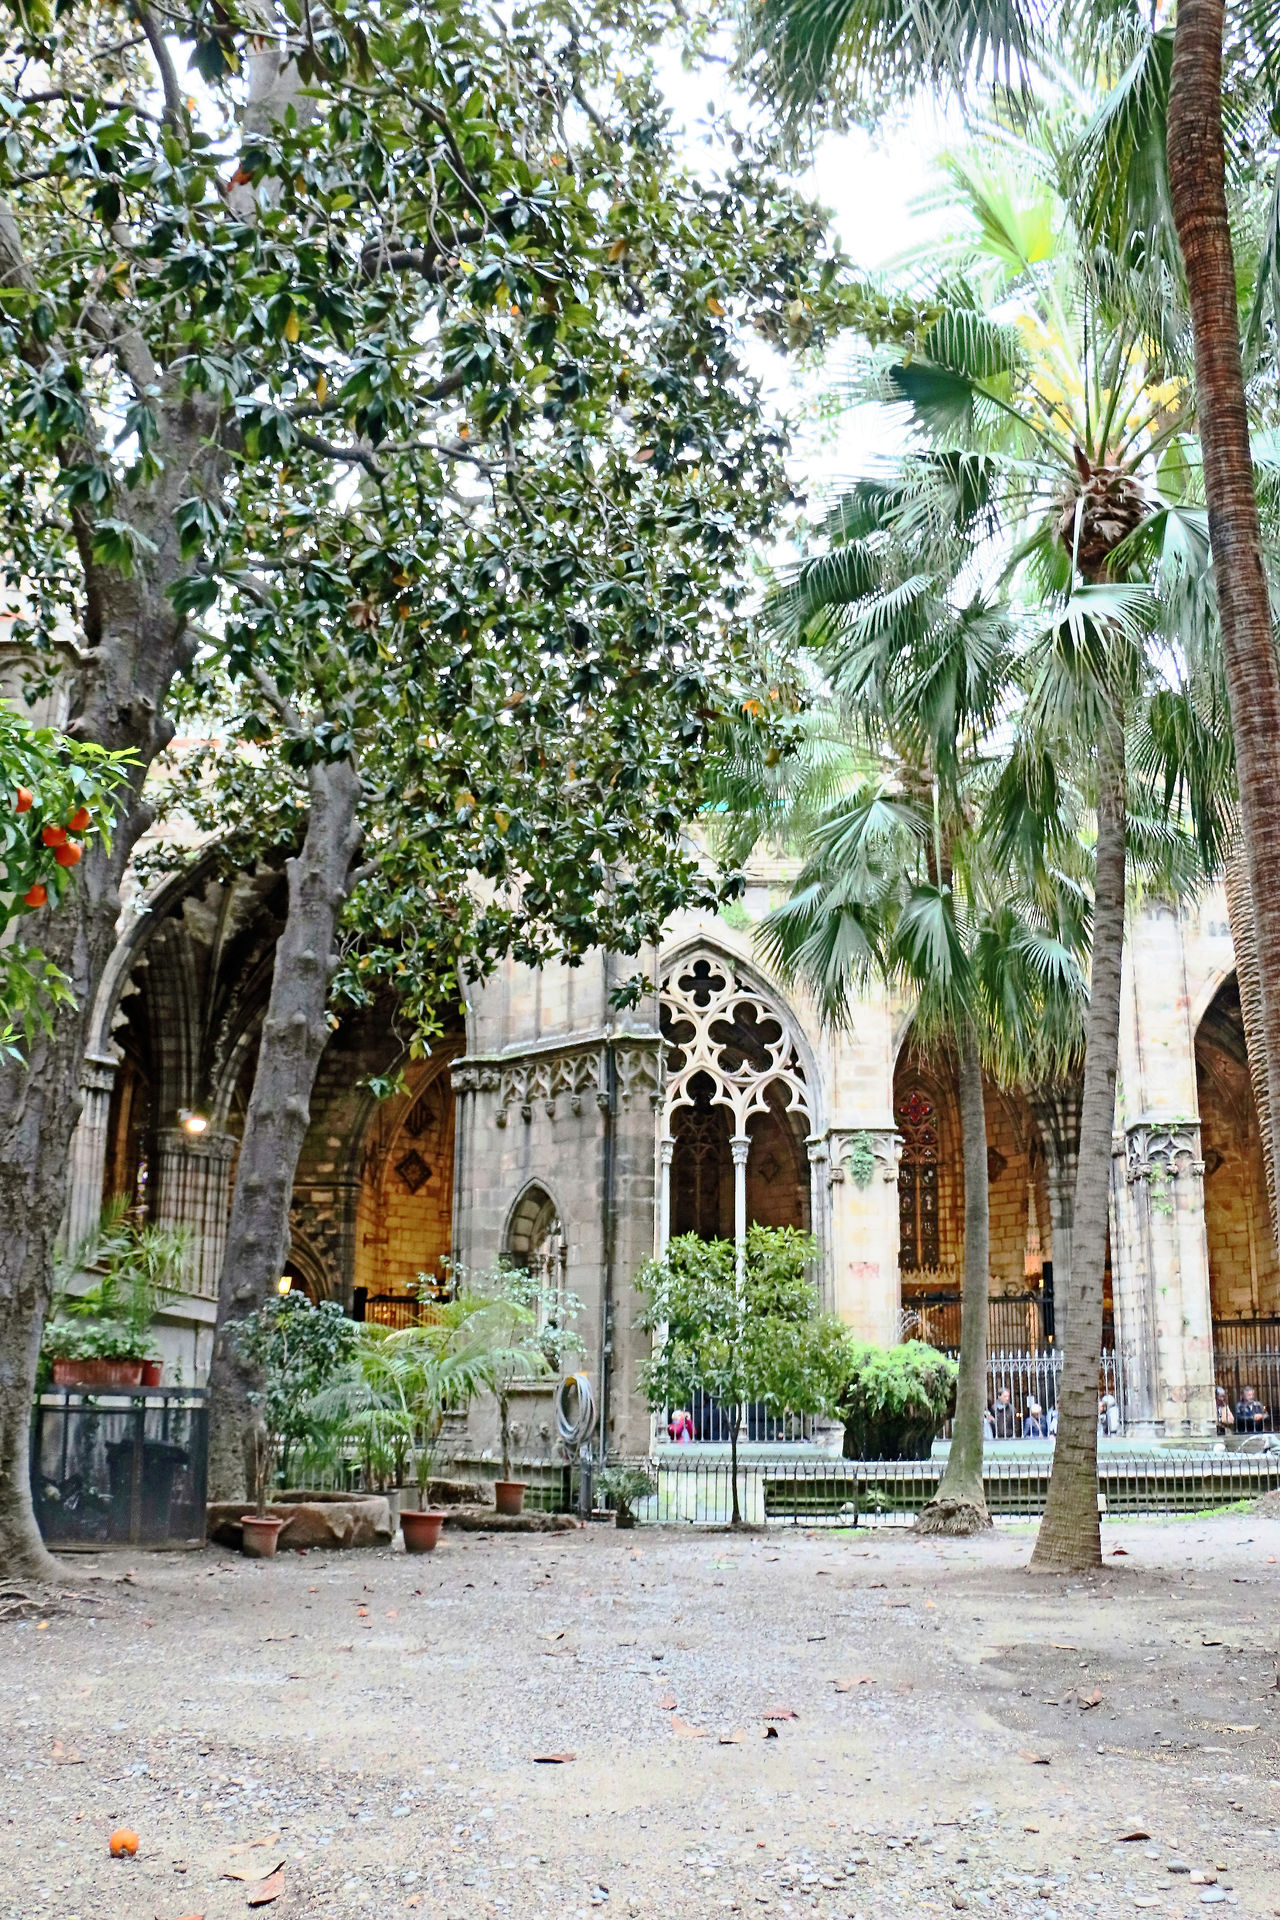 Arch Architecture Barcelona, Spain Building Exterior Built Structure Cloister Day Gotic Cathedral Outdoors Palm Tree Tree